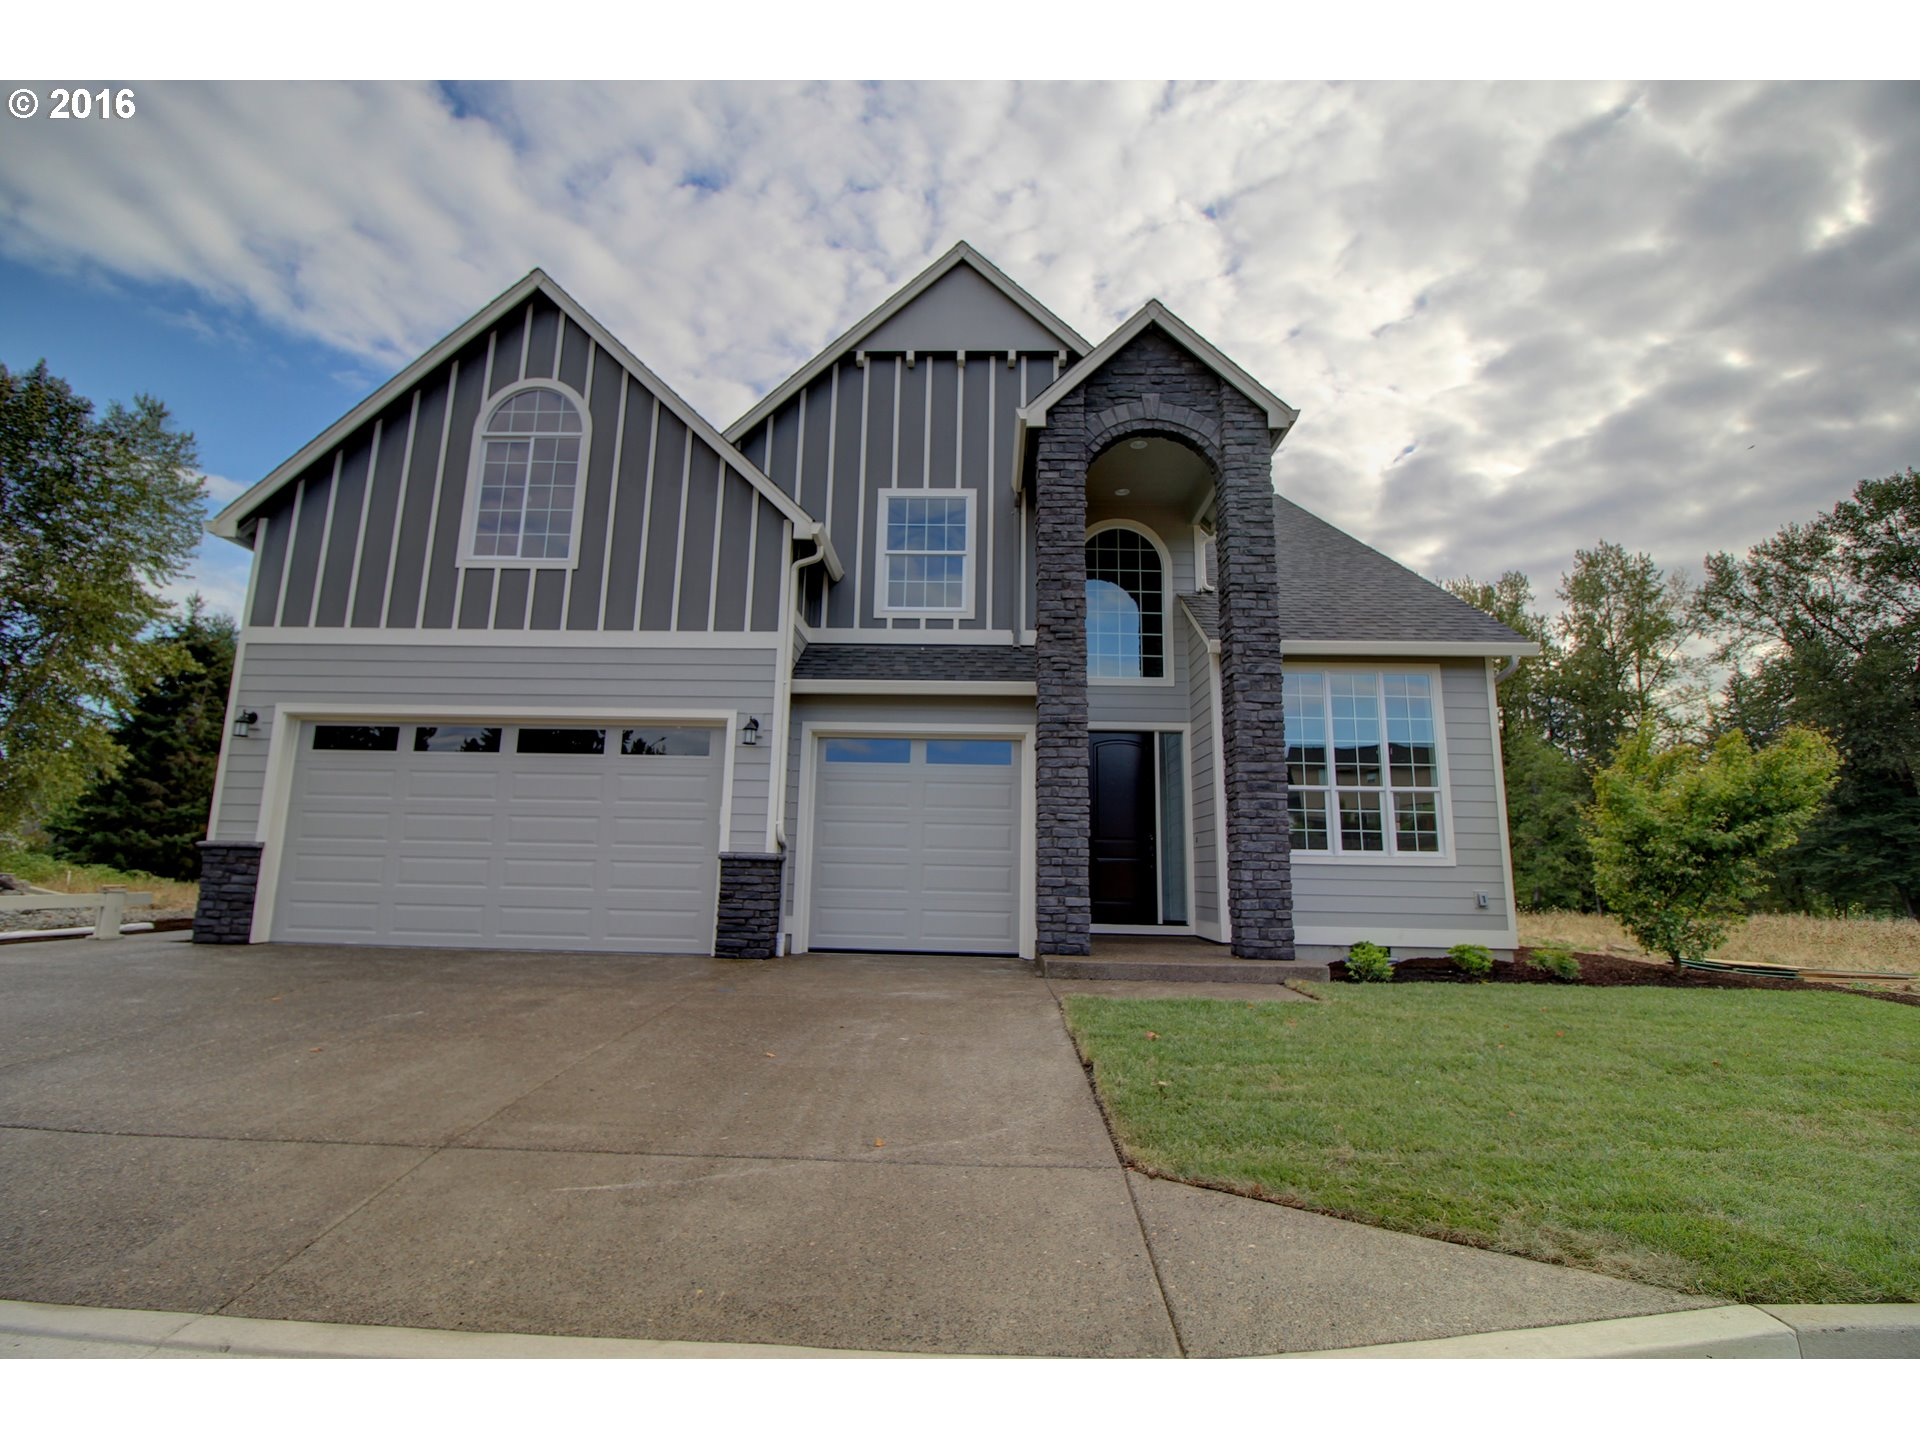 Washougal Riverfront living! This beautiful home sits on over an acre lot on the river. Enjoy over 2800 square feet with 4 bedrooms, an office on the main floor plus a bonus room up. Inside features granite, 95% efficiency furnace, hardwood floors, tile, ceiling fans, tons of storage. Fully landscaped with sprinkler system and a 3 car garage. Head down to your own personal slice of the Washougal River and relax.